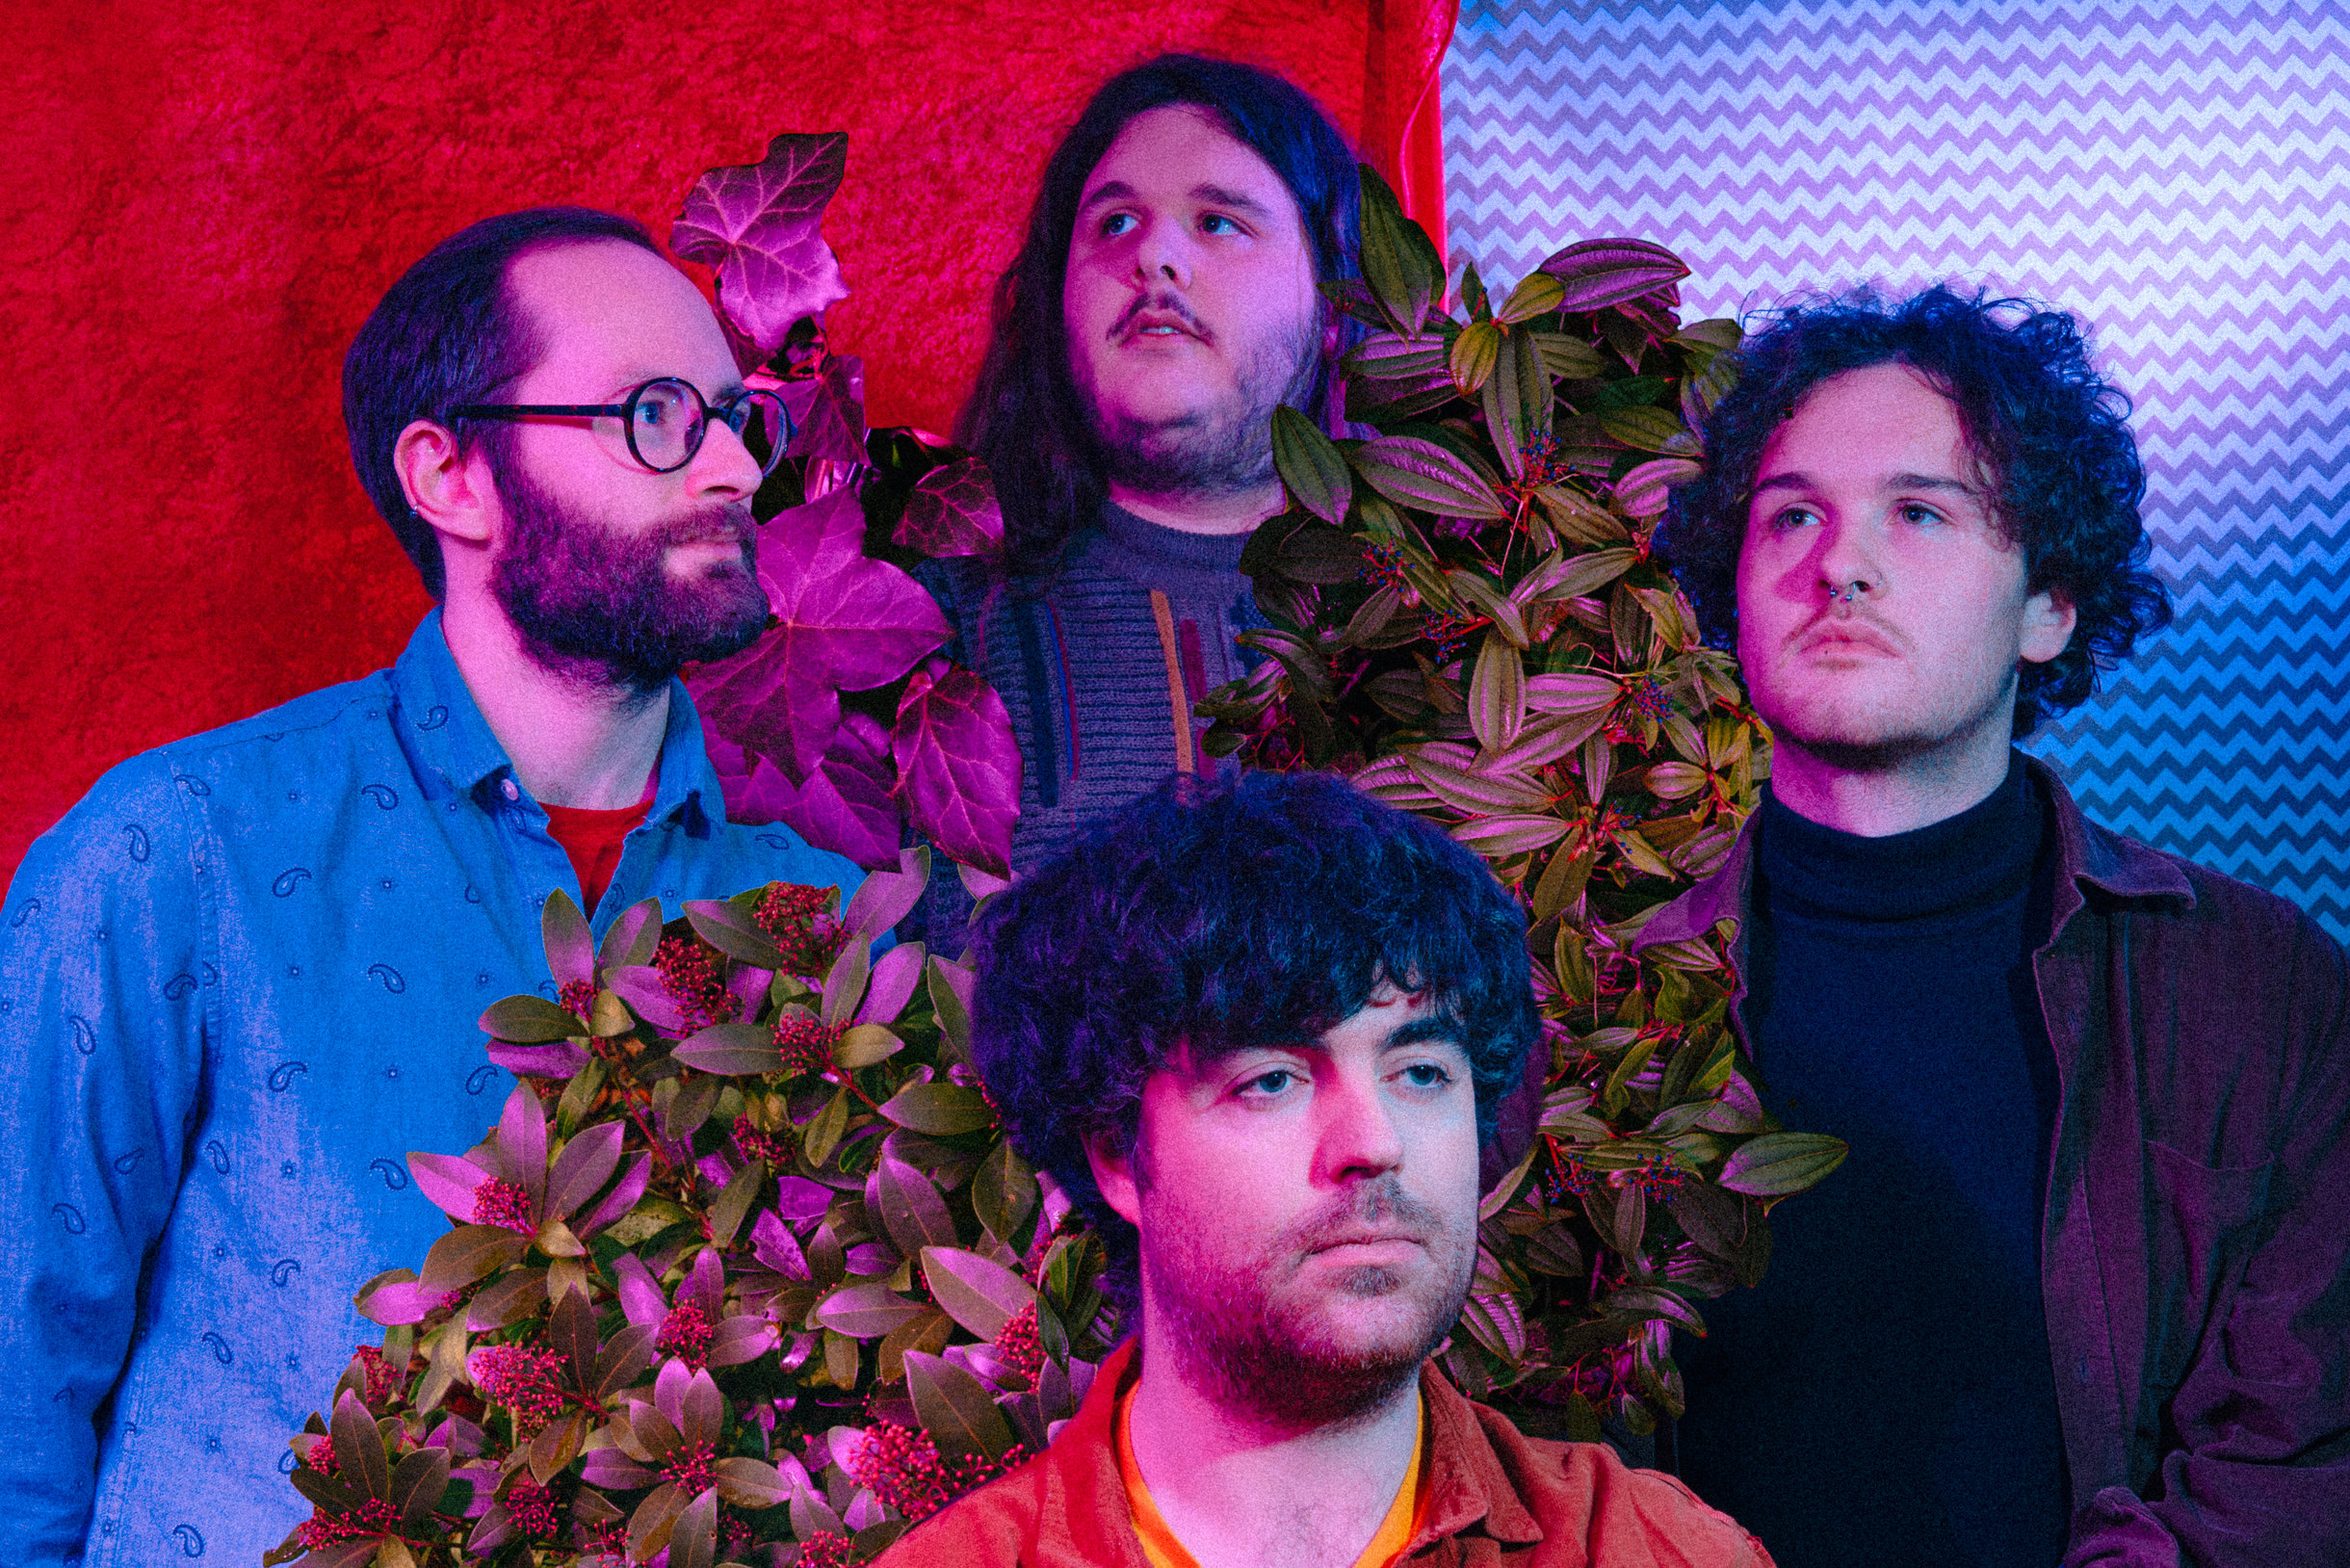 """Ireland's Junk Drawer Share New Krautrock Meets Post-Punk Song, """"Temporary Day"""" (premiere)"""